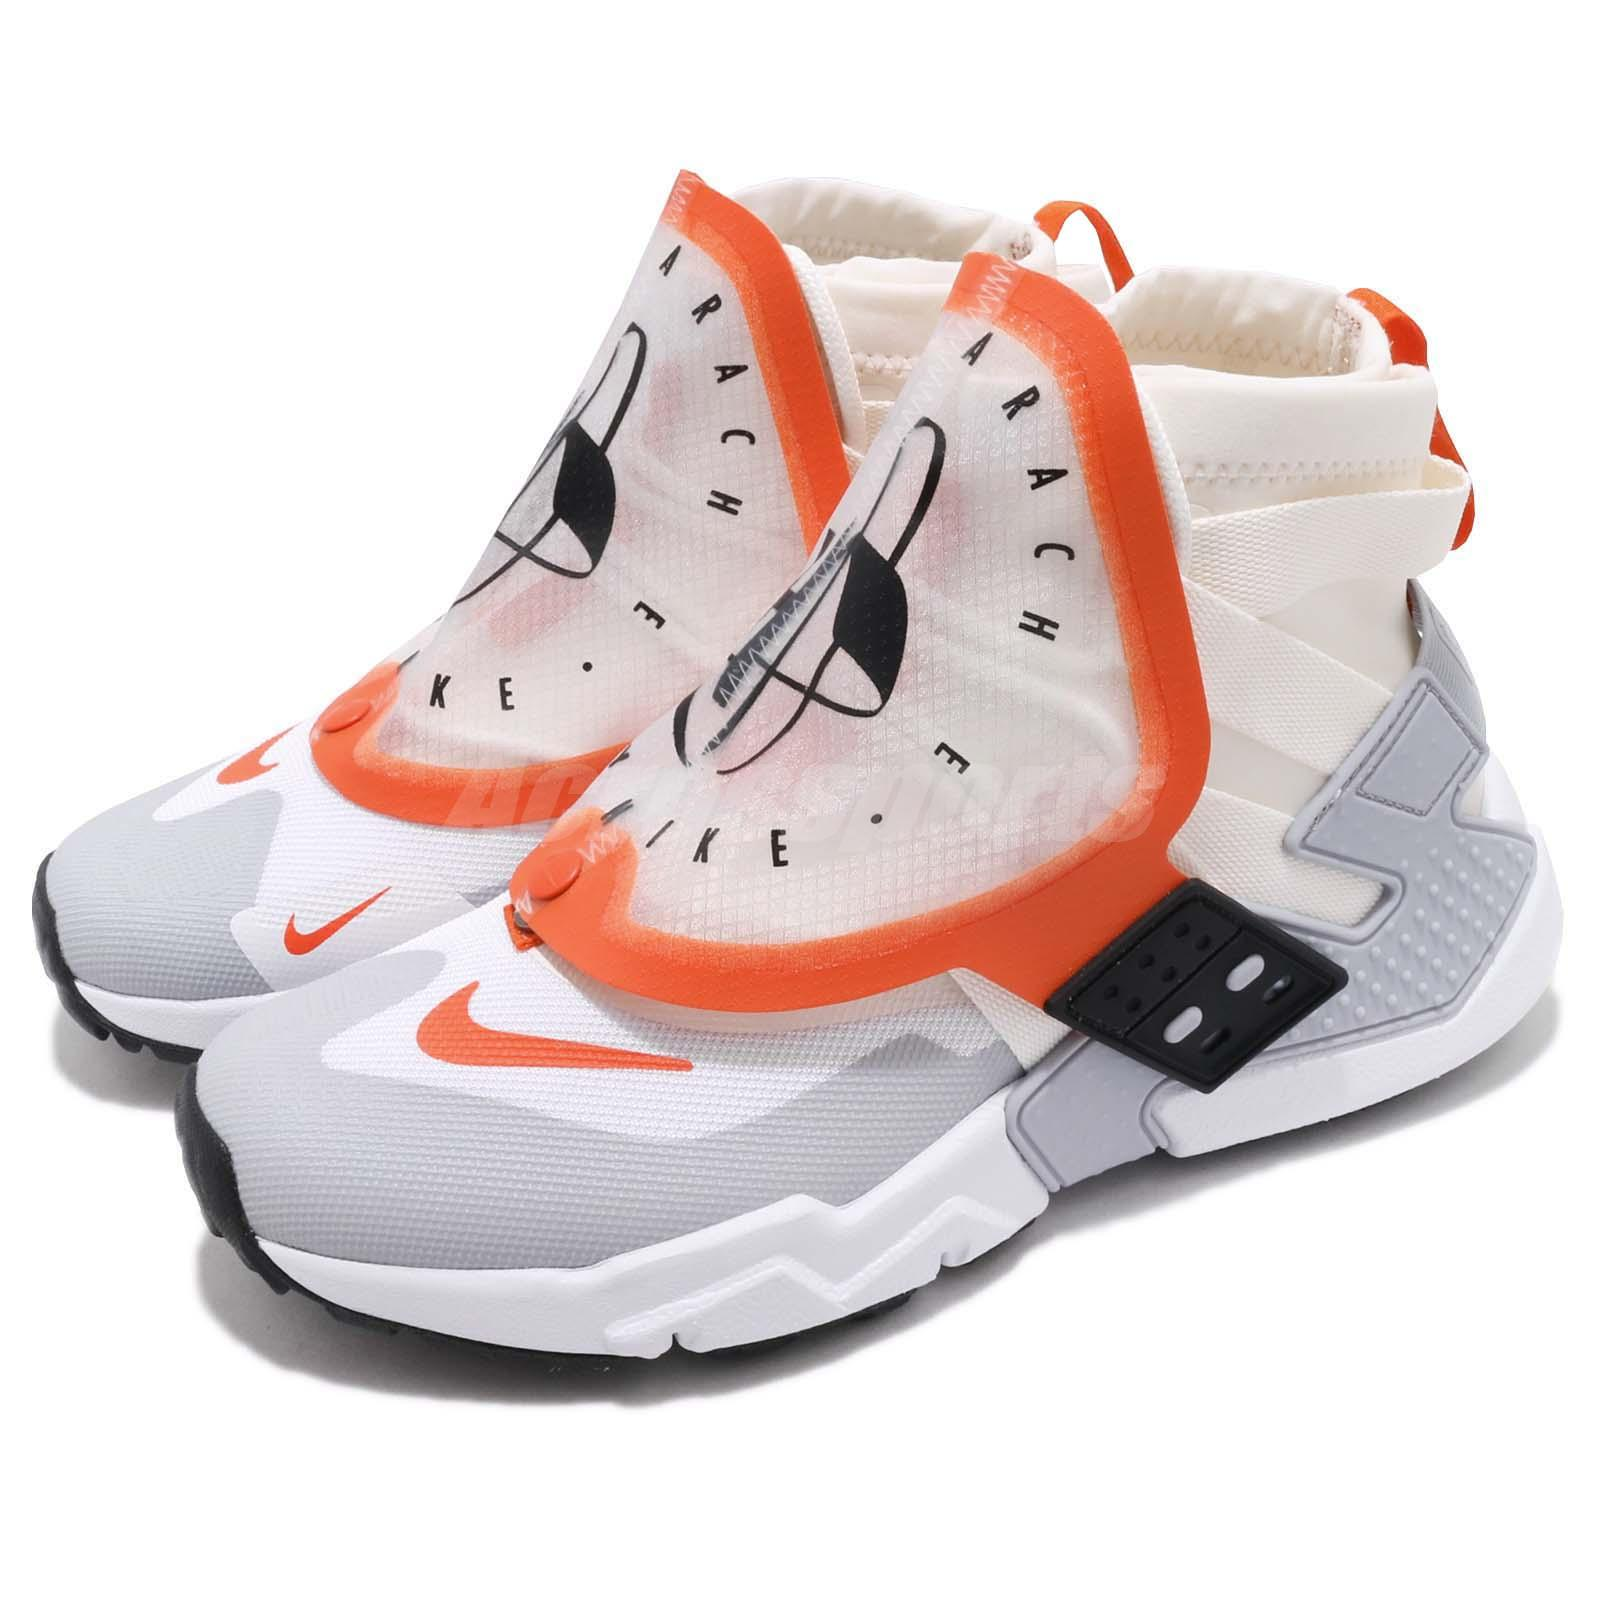 7646a4a9ebe07 Details about Nike Air Huarache Gripp QS Sail Orange White Men Running  Casual Shoes AT0298-100